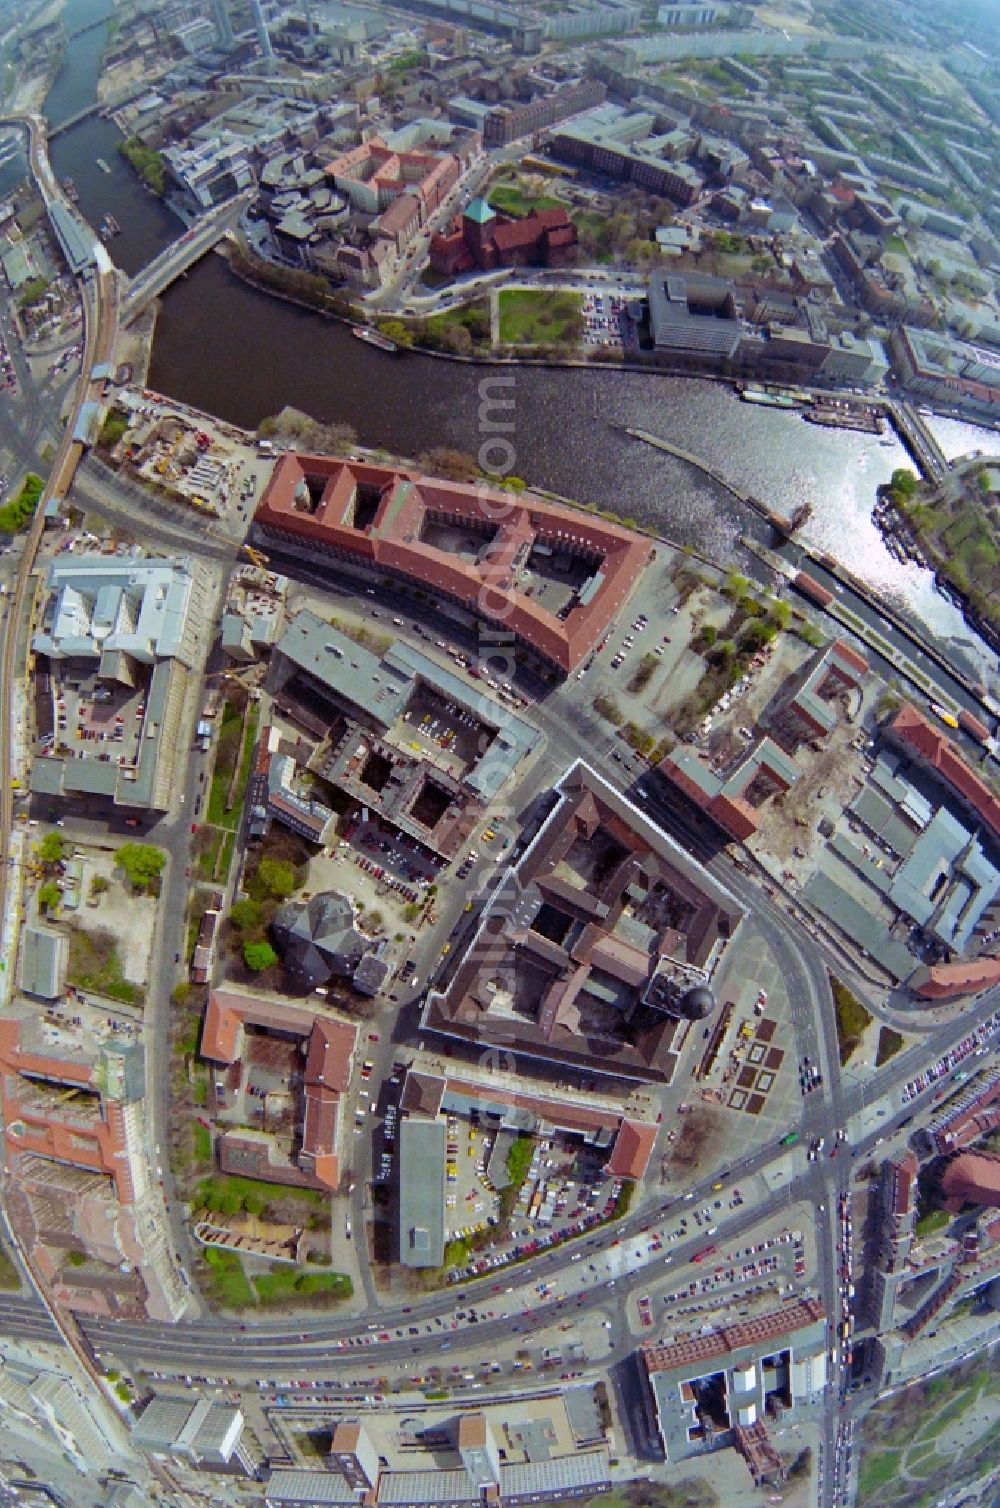 Aerial photograph Berlin - Fisheye perspective administration building Altes Stadthaus - Old Town Hall - on Molkenmarkt in the Mitte part of Berlin in Germany. The building with its distinct tower and dome is the seat of the senate of interior of Berlin.